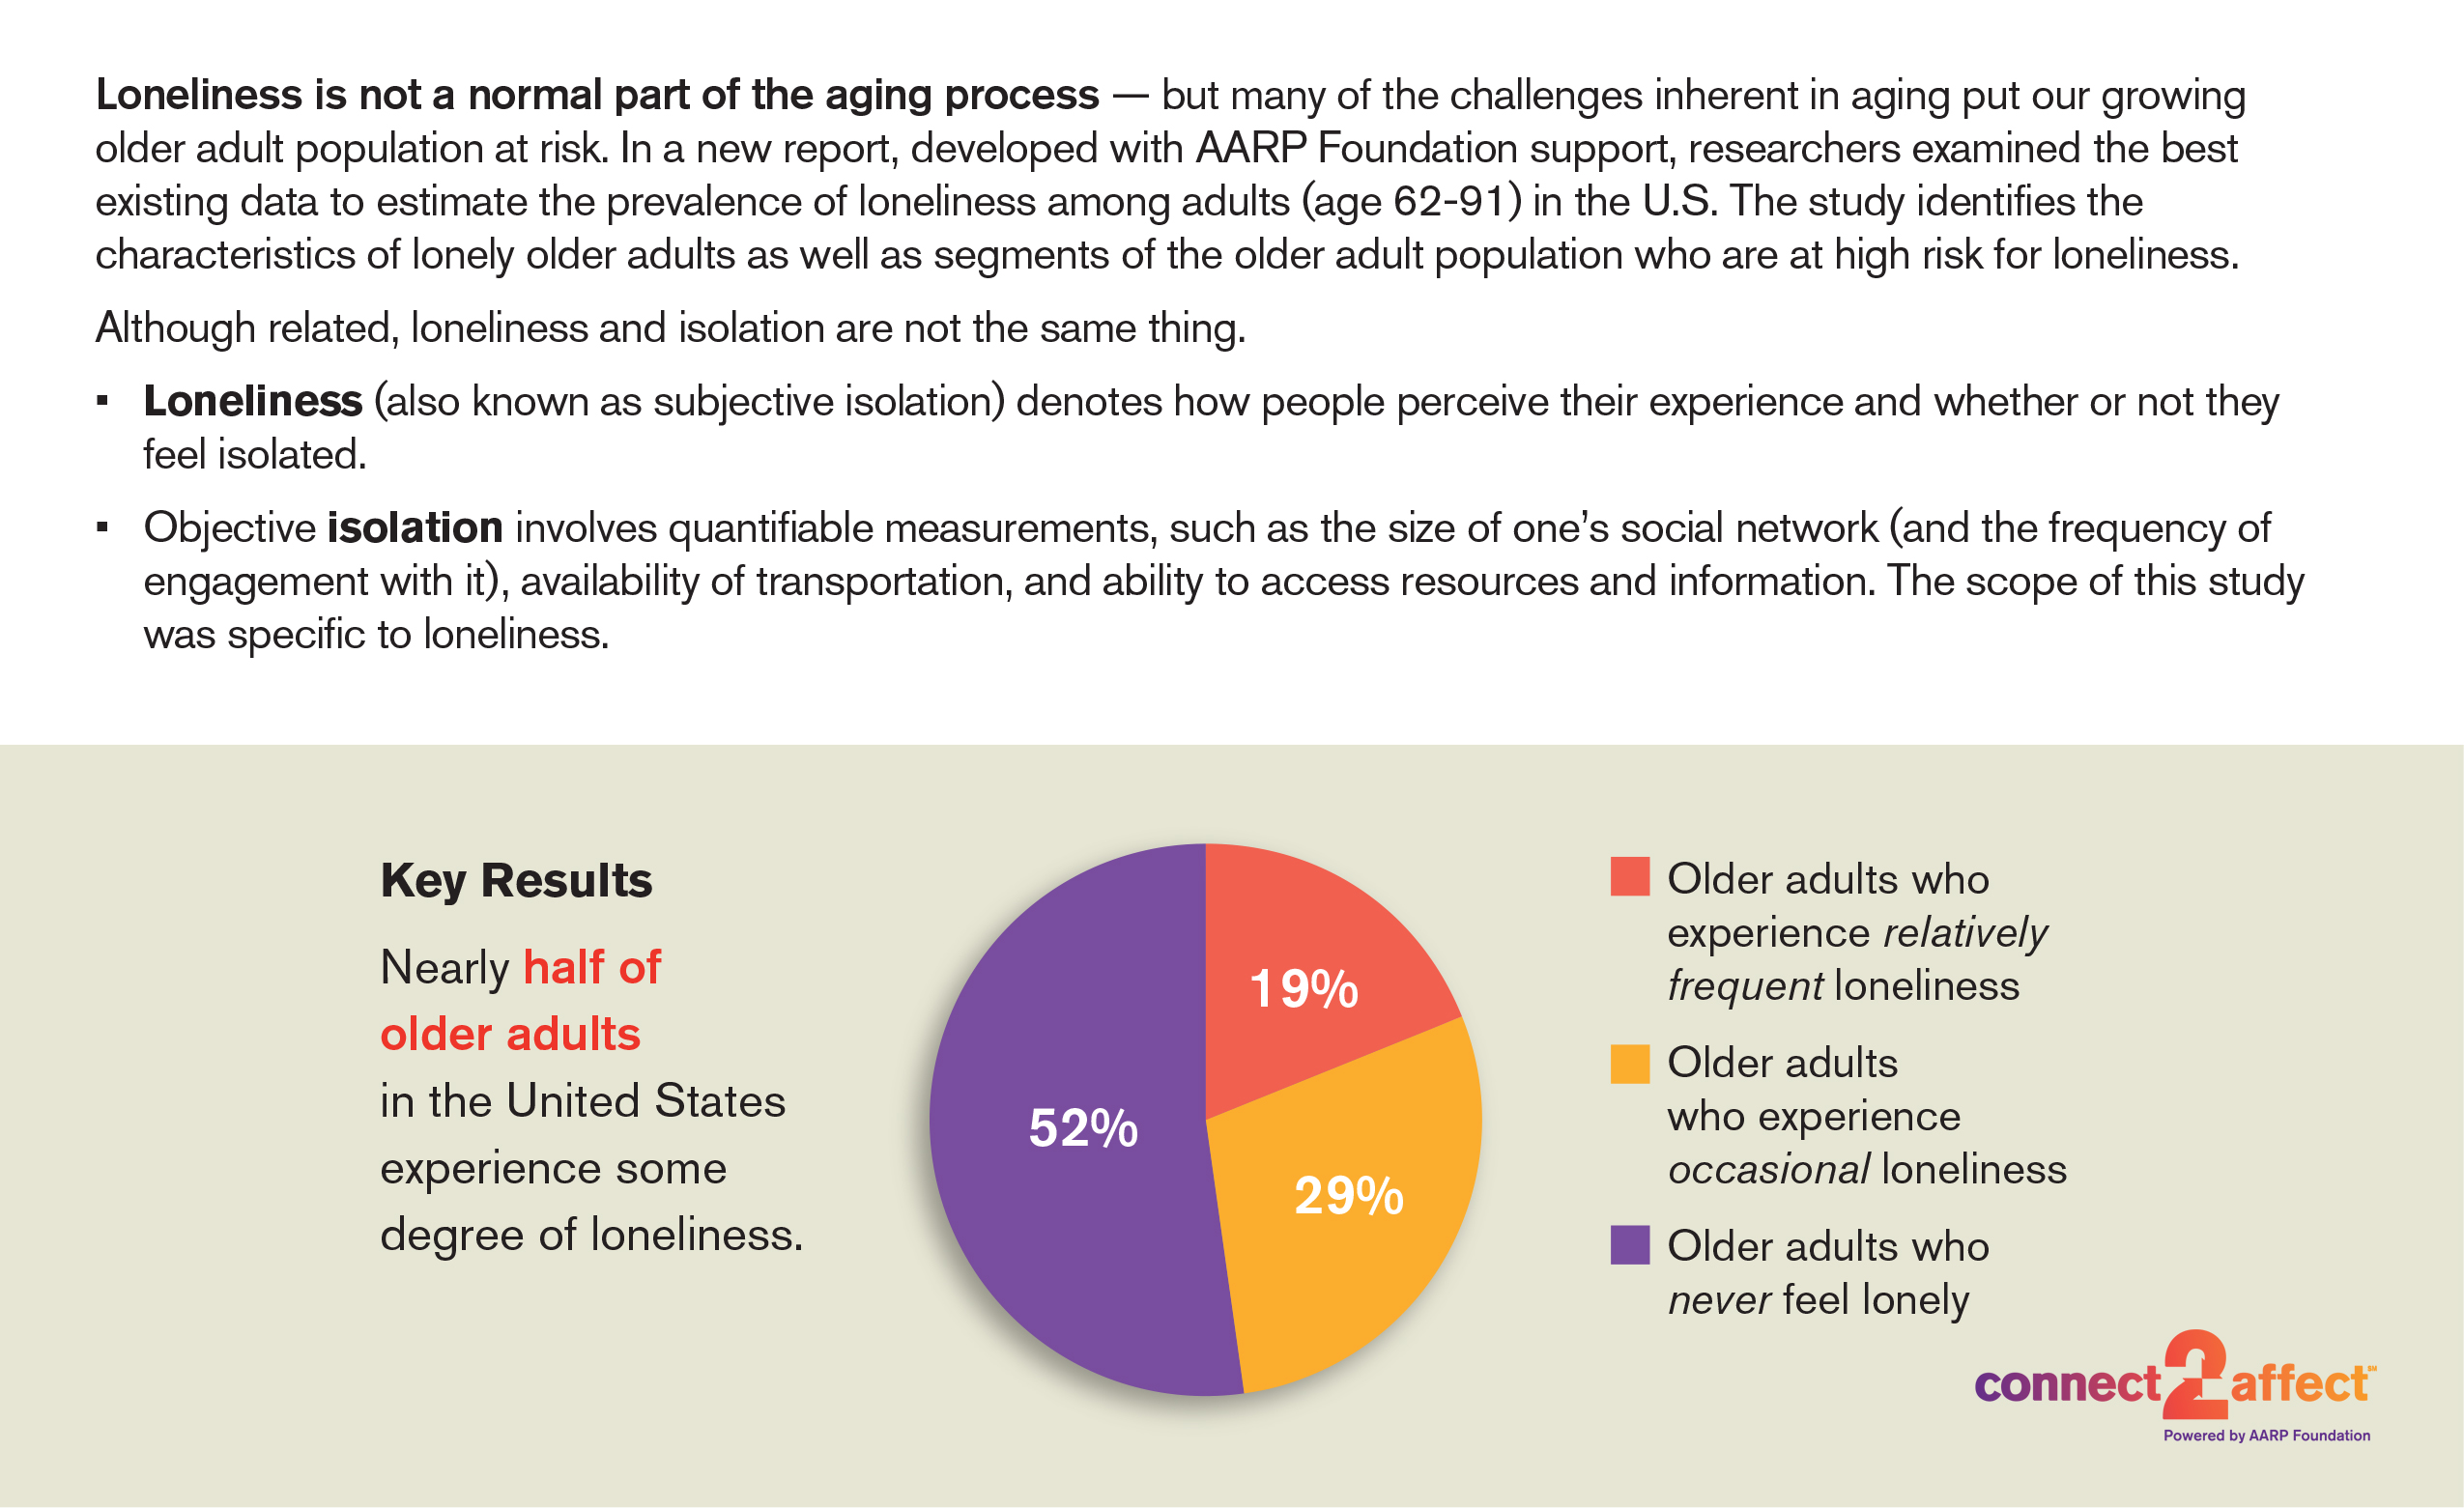 Integrated Services Promote Social Connectedness For Older Adult